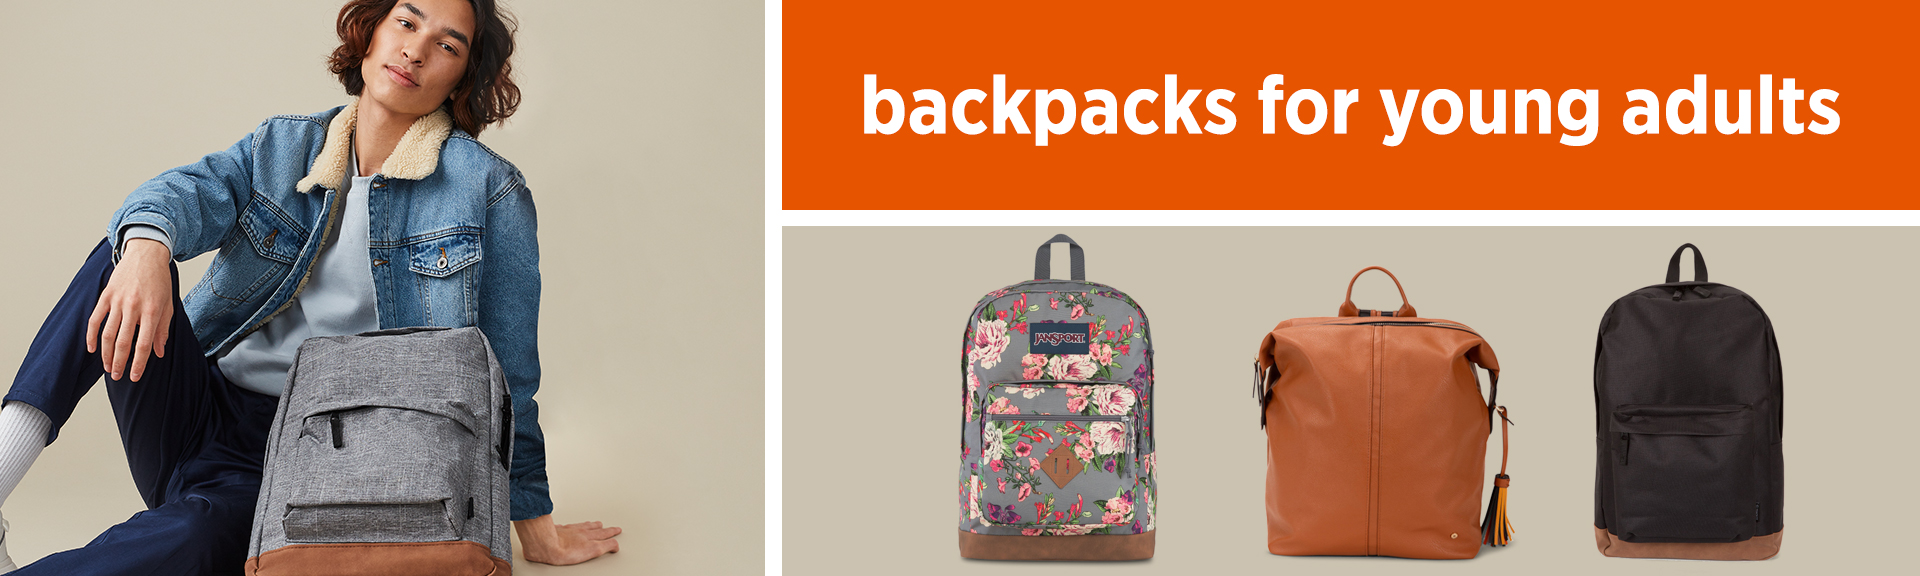 Backpacks for young adults